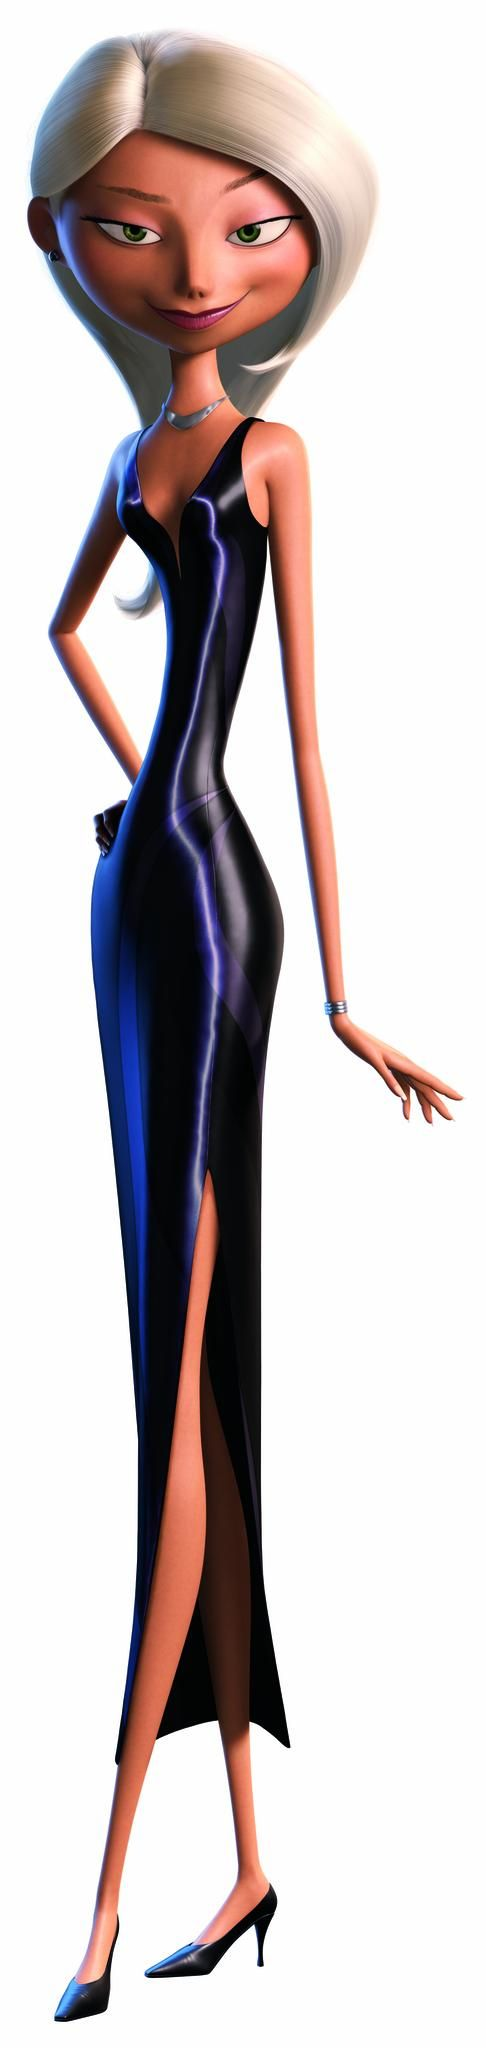 sexy pictures of violet from the incredibles naked